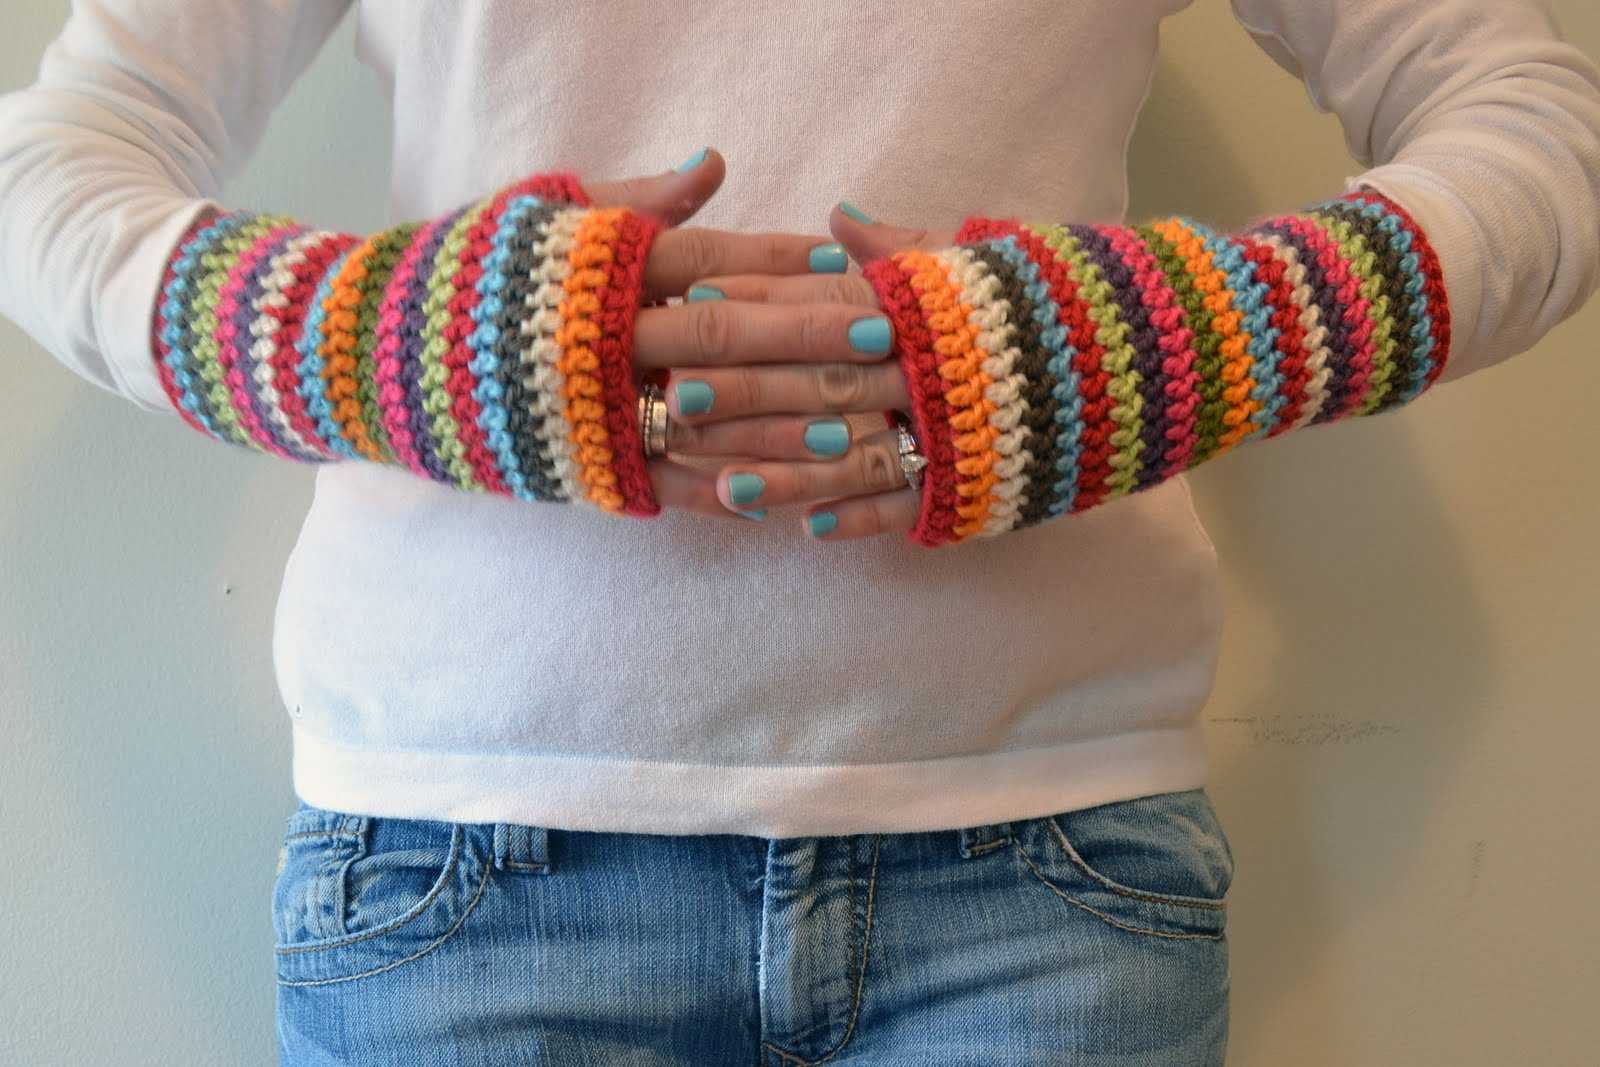 Crochet Fingerless Gloves Picture Tutorial : Crochet in Color: Colorful Stripey Fingerless Mitts